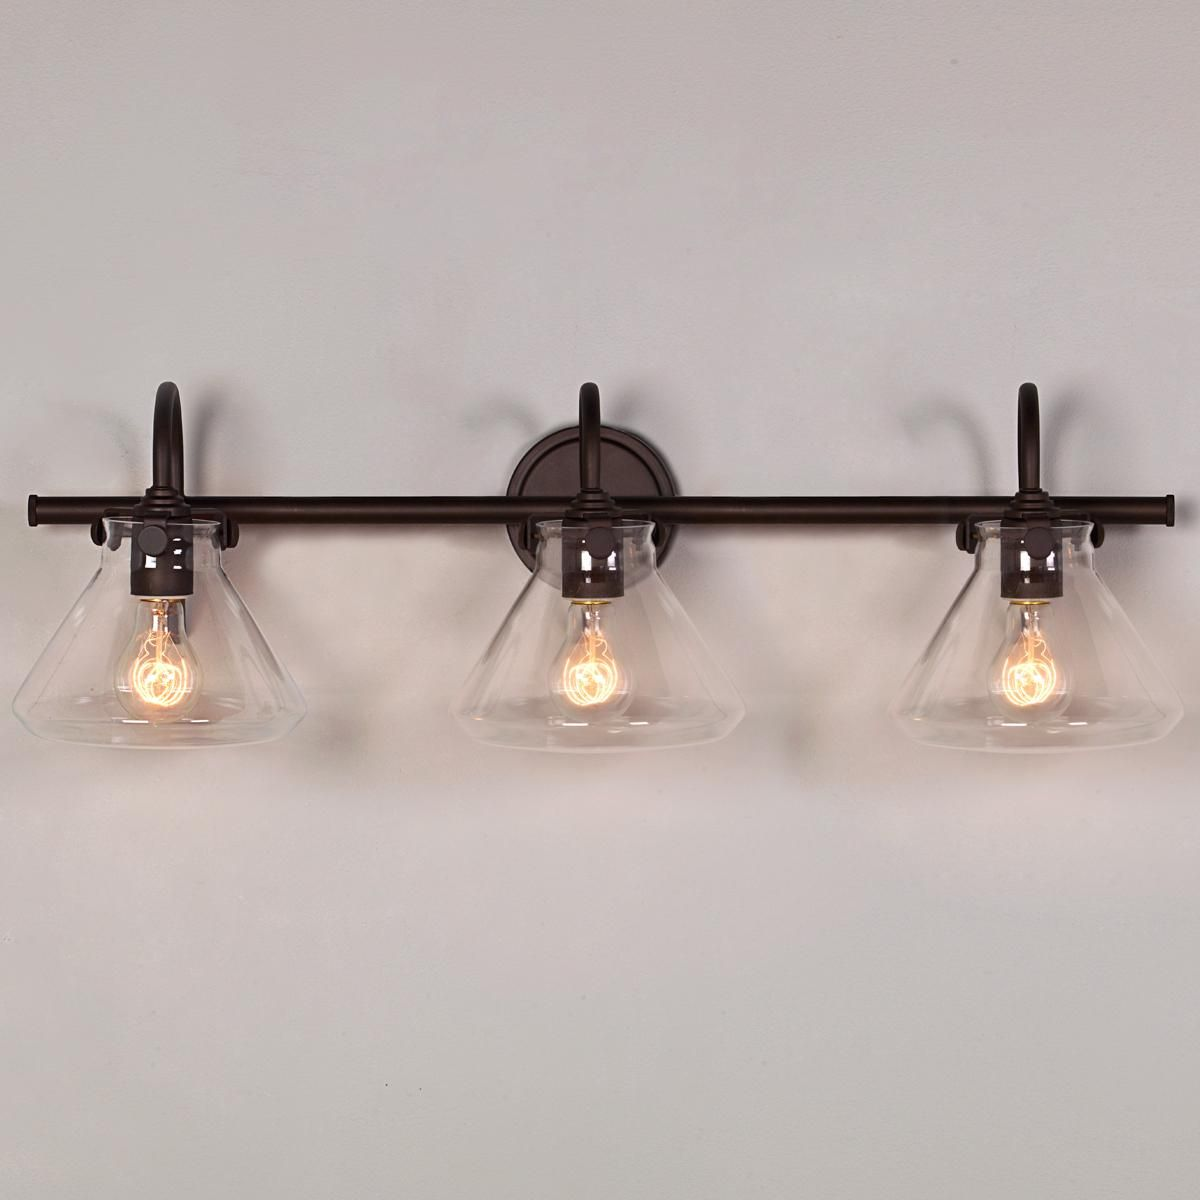 Bathroom Light Fixtures Oil Rubbed Bronze beaker glass bath light - 3 light | bath light, oil rubbed bronze